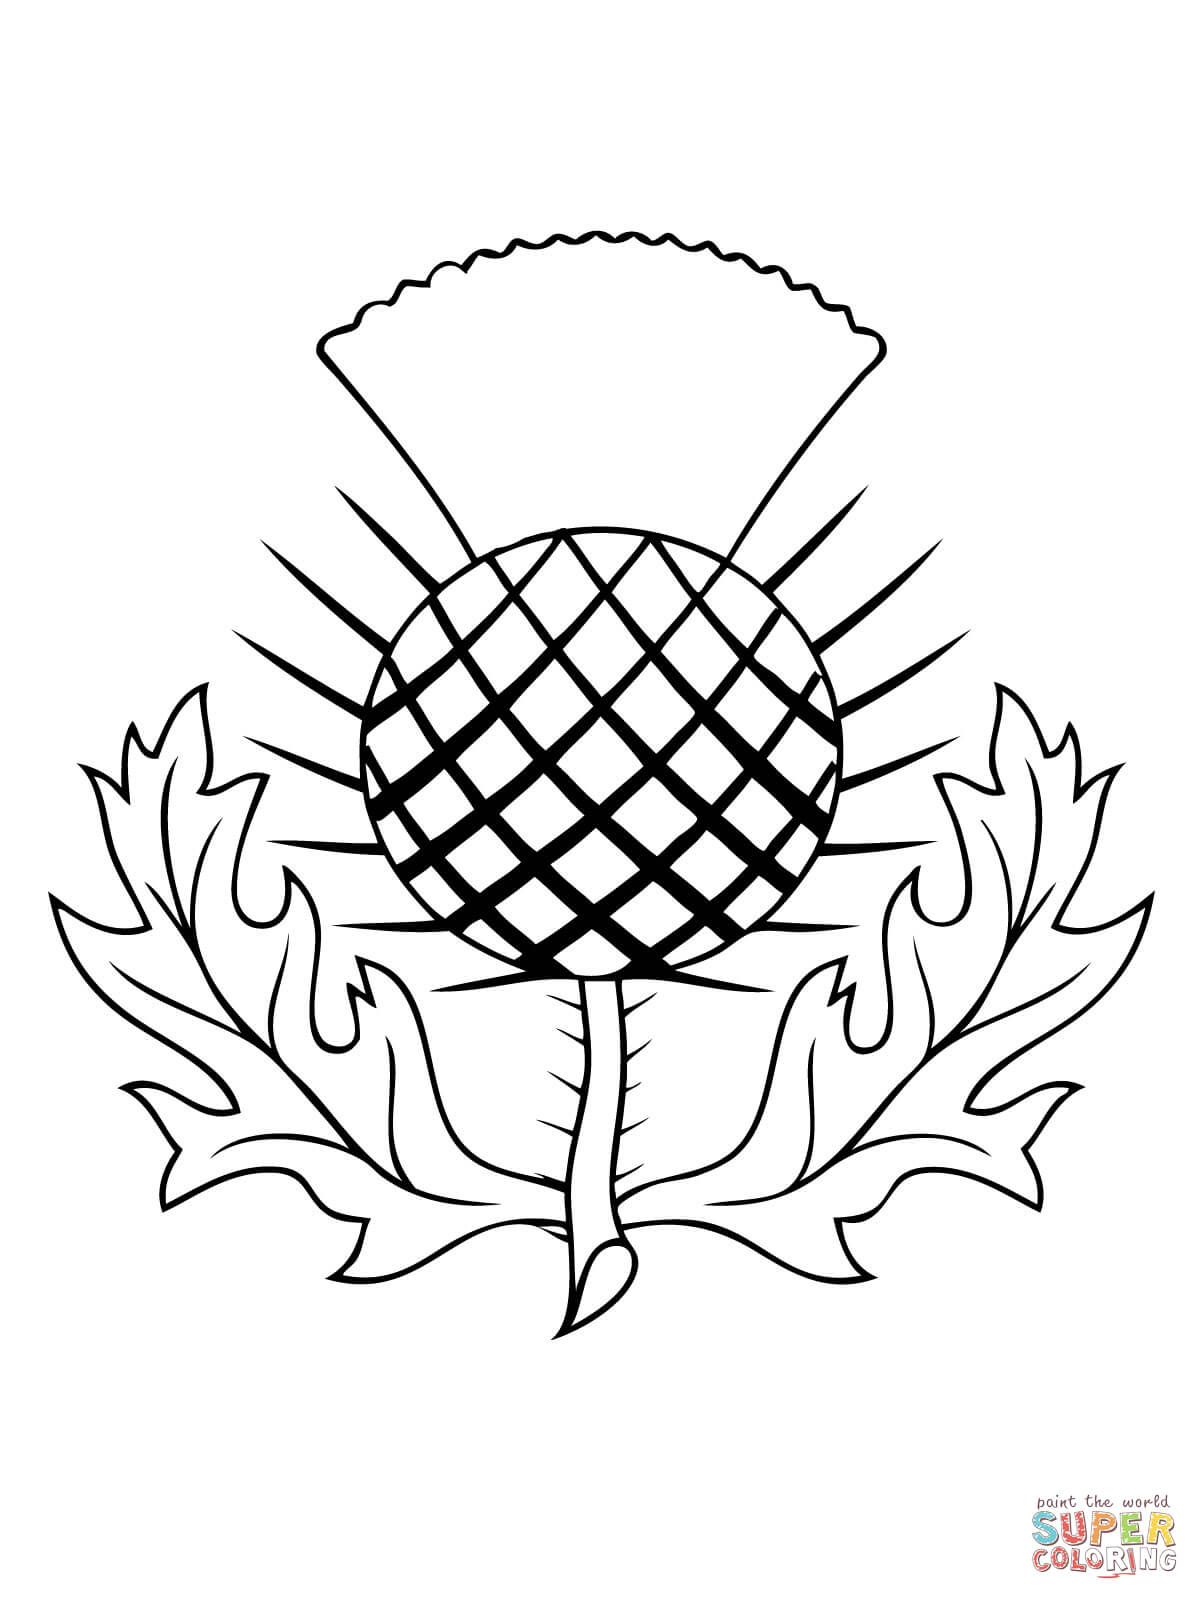 the thistle of scotland coloring page free printable coloring